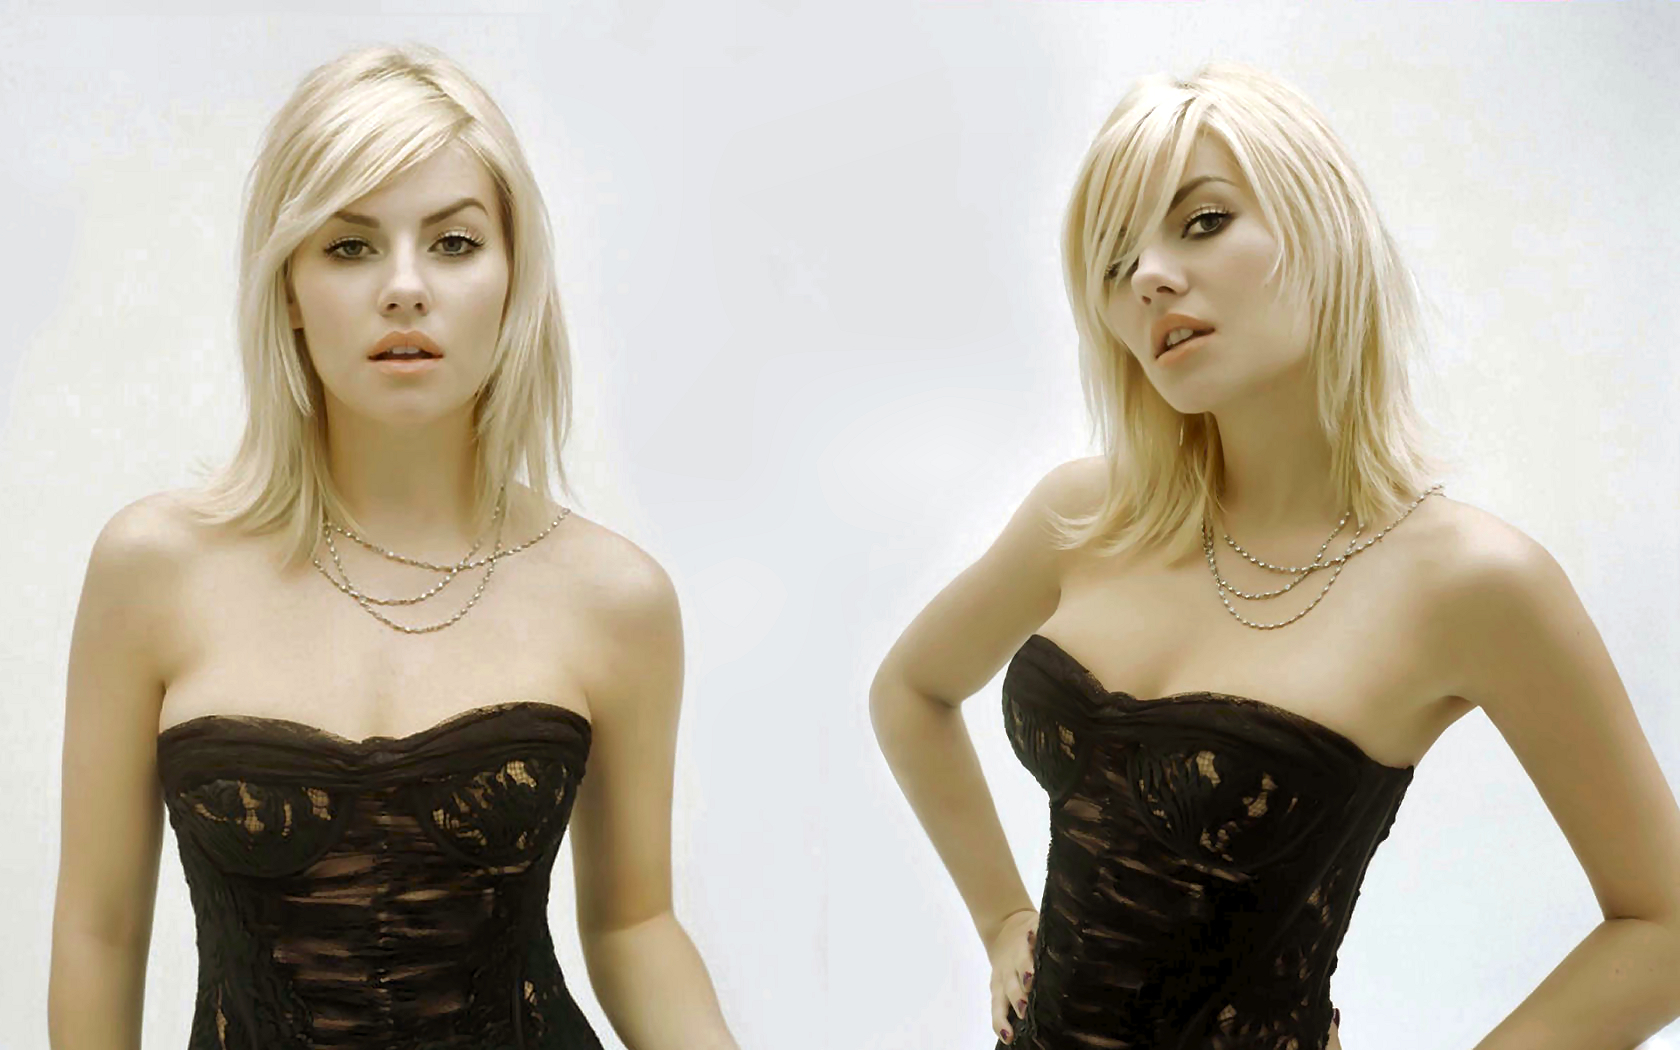 blondes Women elisha cuthbert HD Wallpaper